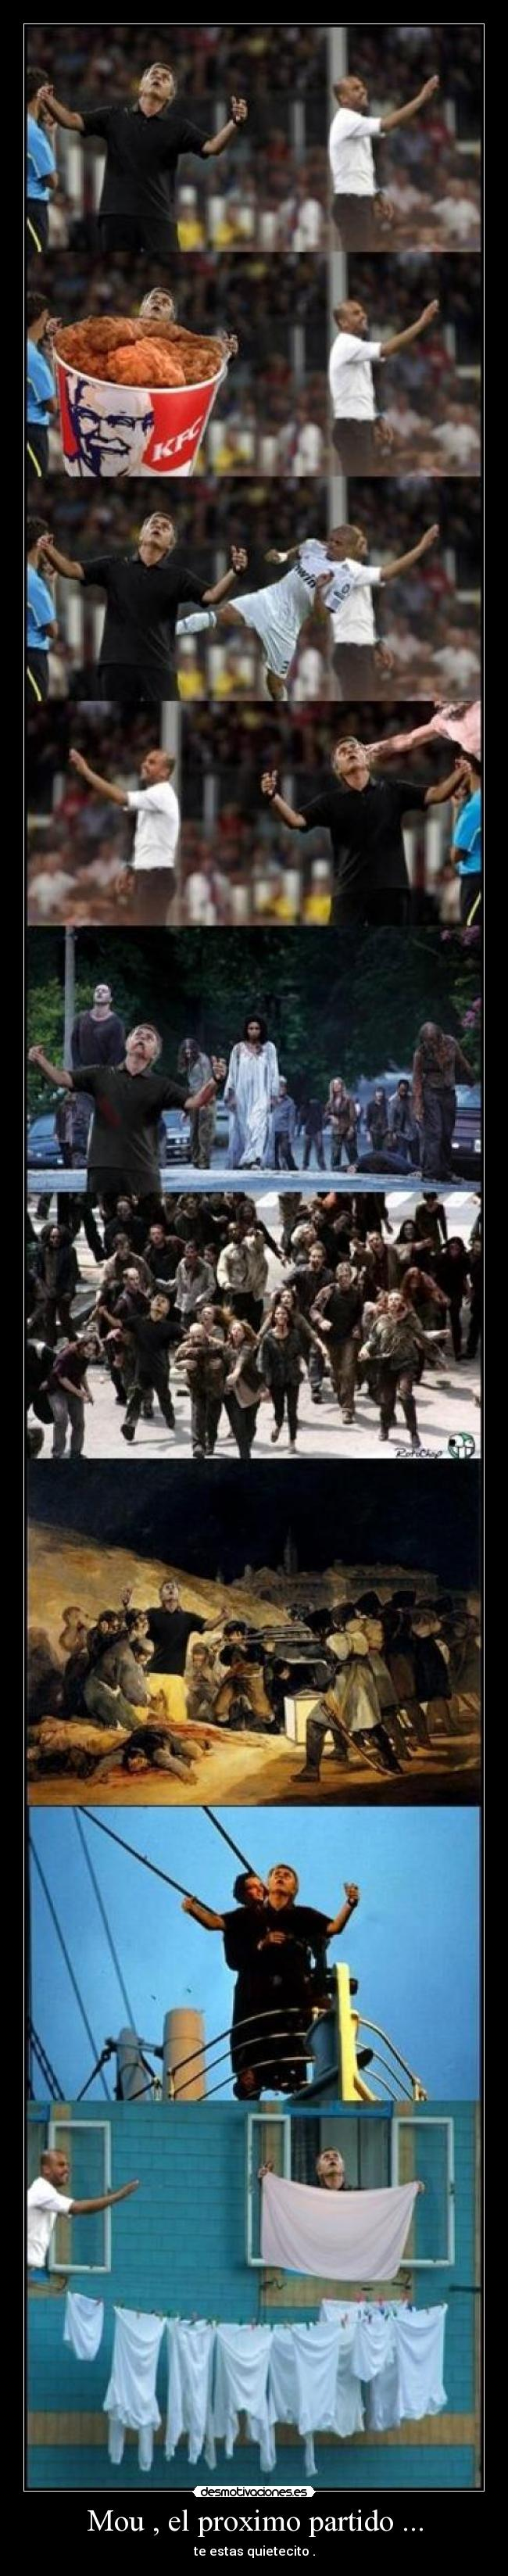 carteles mou mou futbol the walking dead desmotivaciones